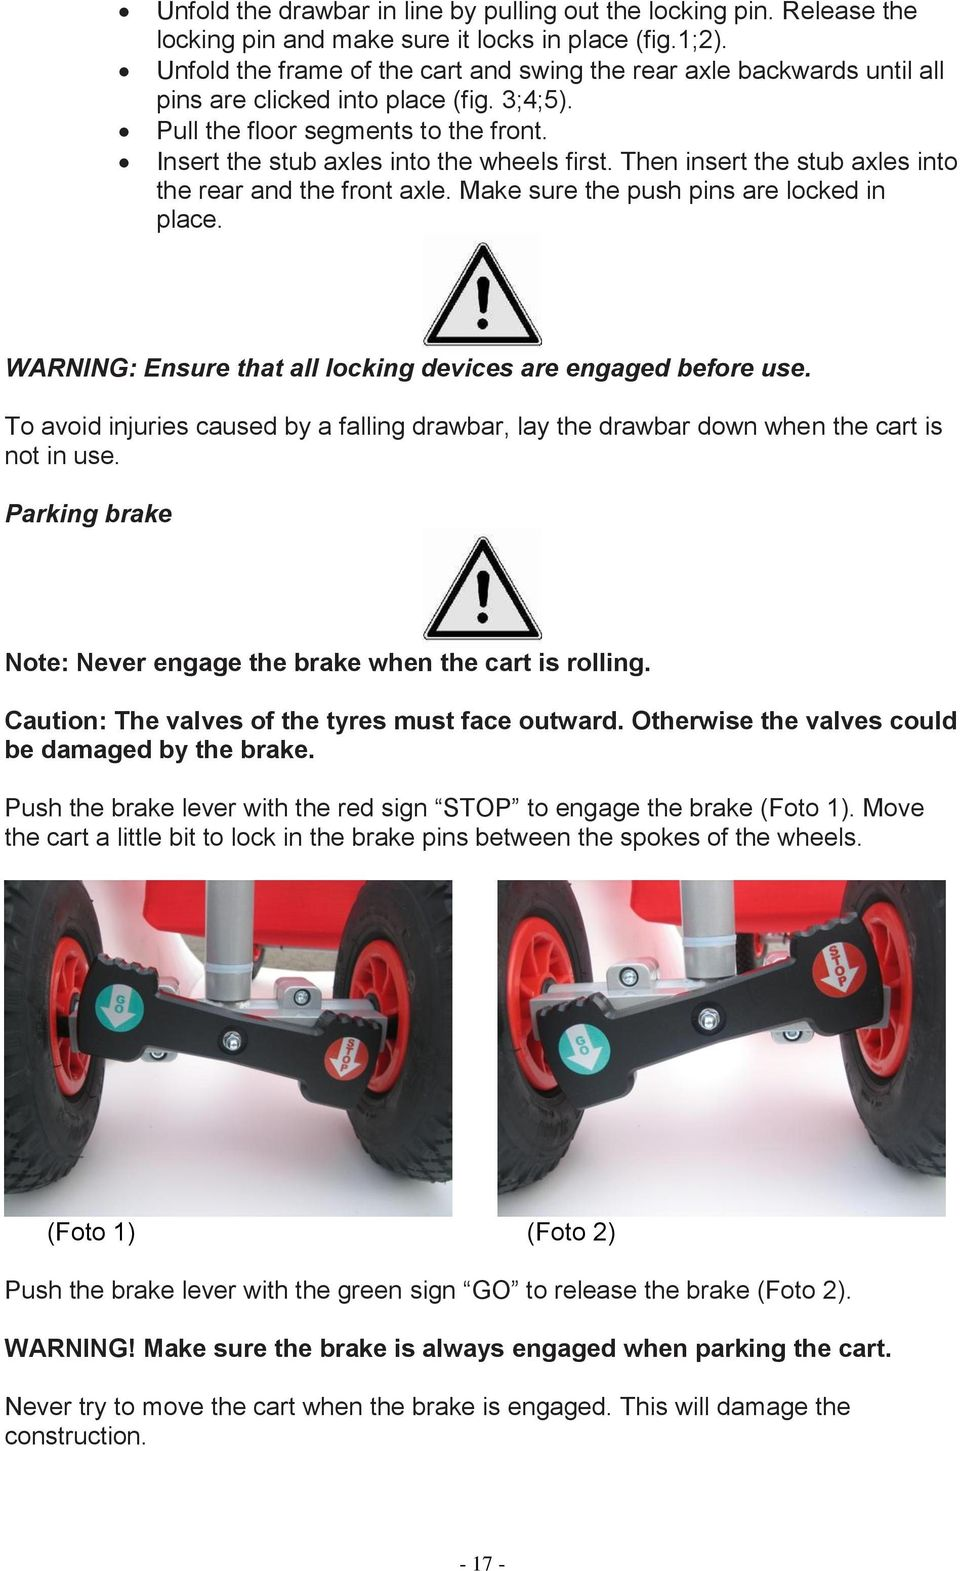 Then insert the stub axles into the rear and the front axle. Make sure the push pins are locked in place. WARNING: Ensure that all locking devices are engaged before use.